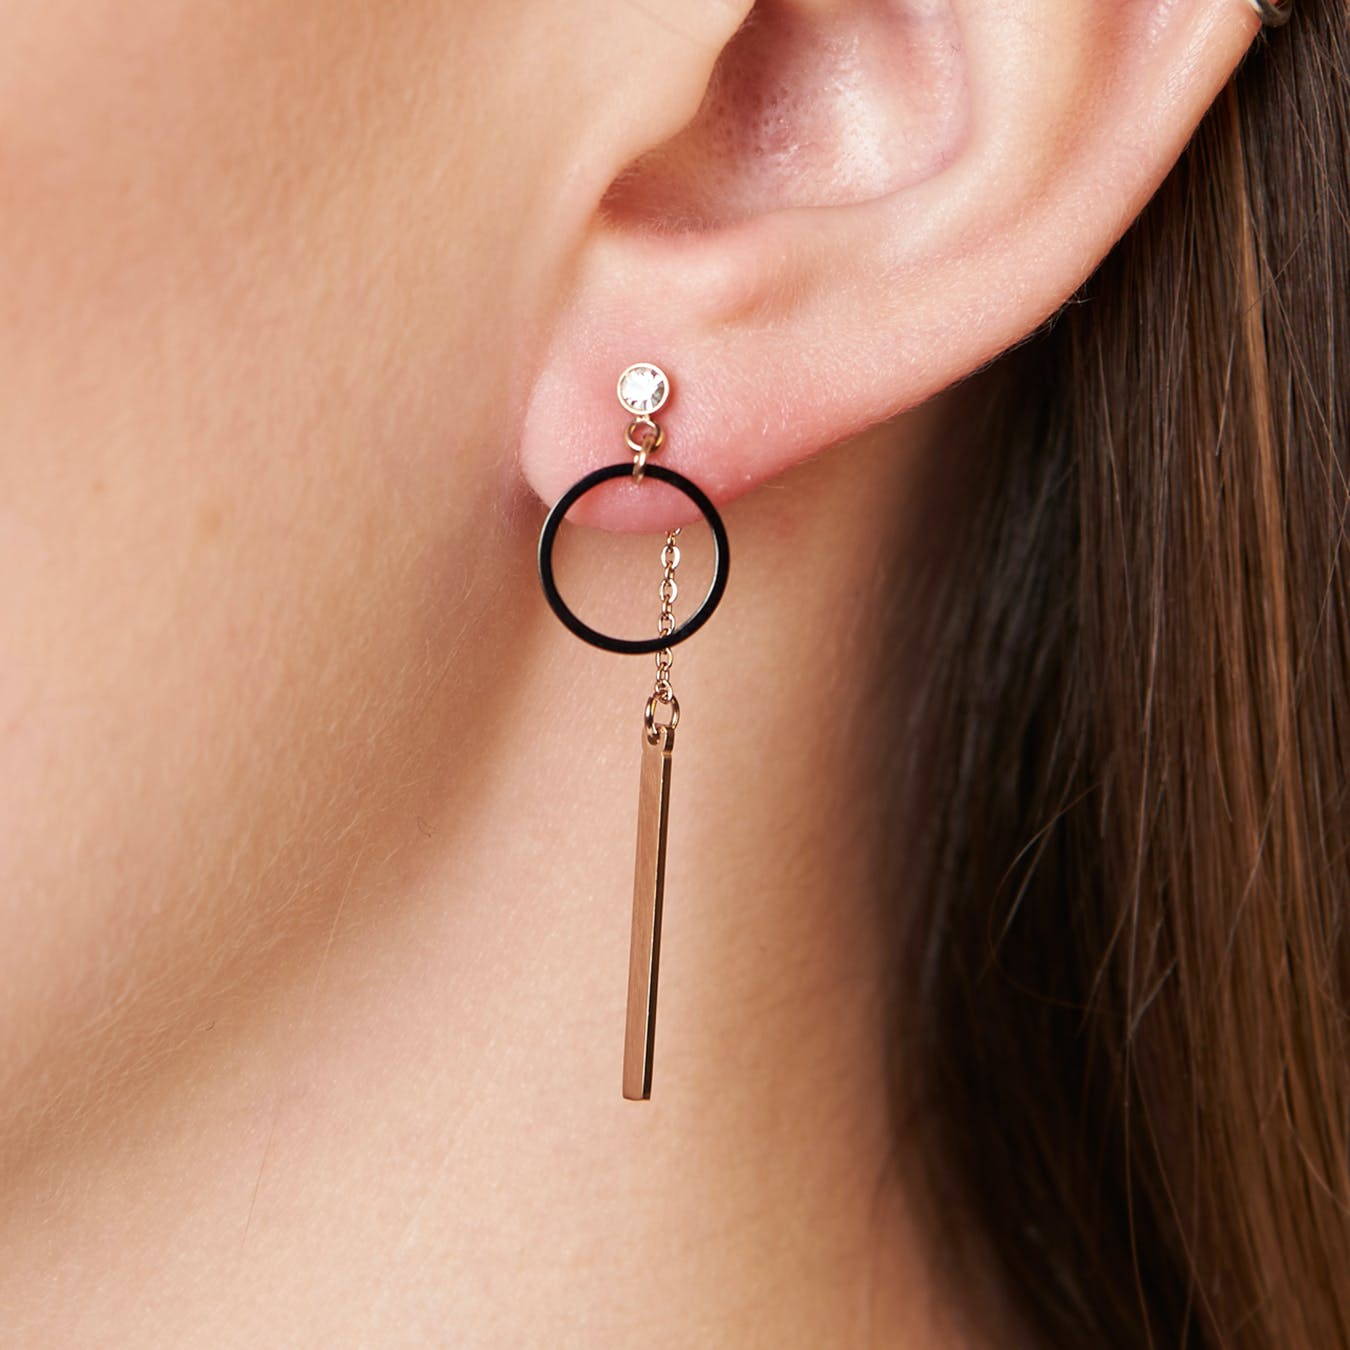 Minimal Sleek Two-Way Earrings